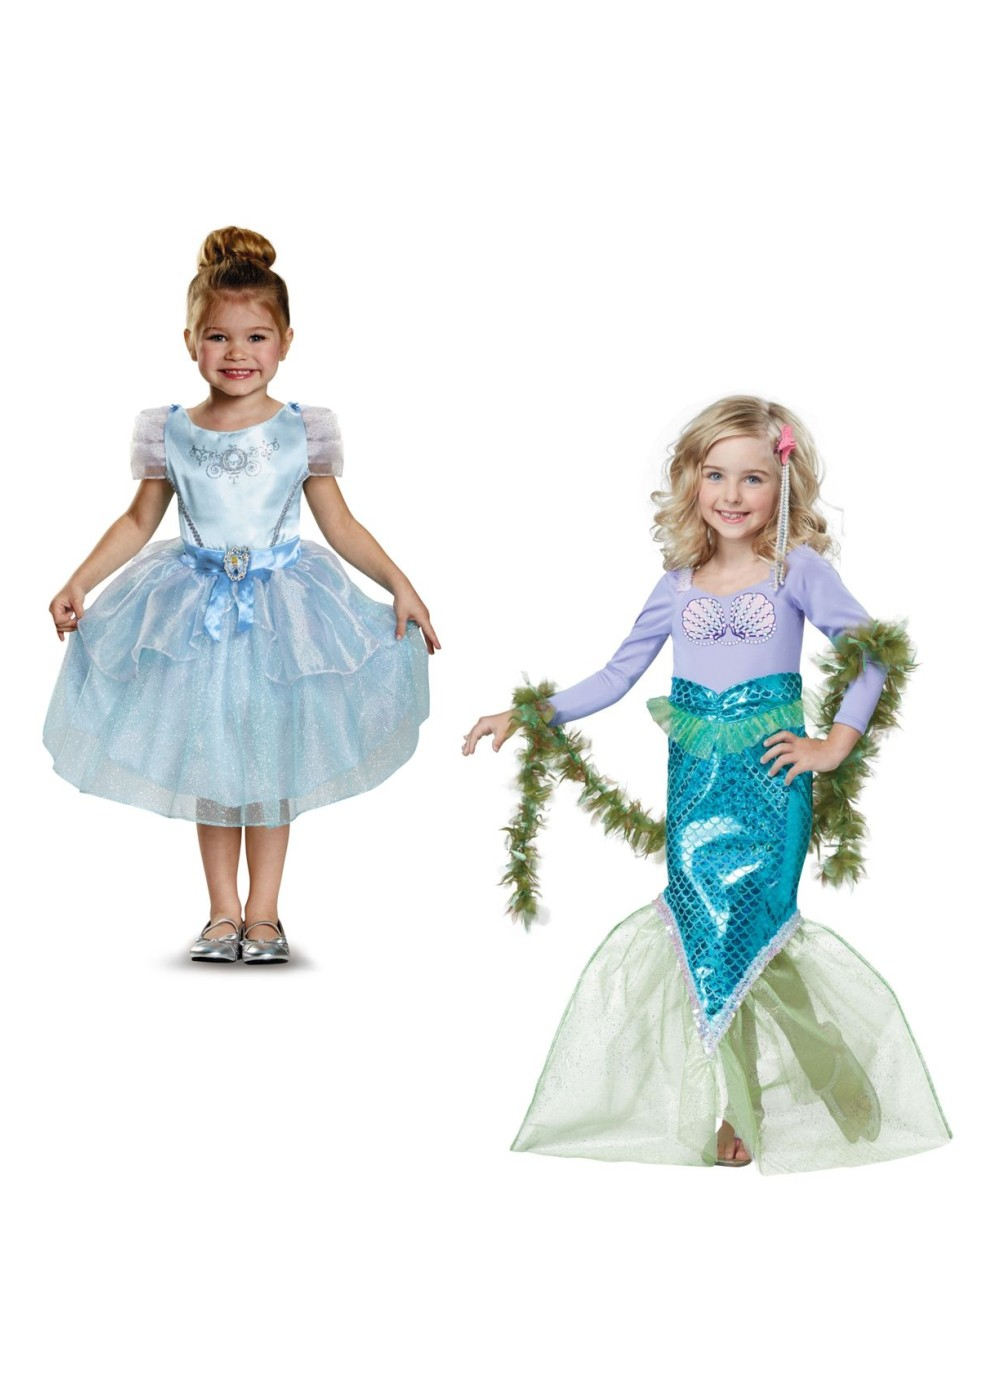 Kids Cinderella Costume And Magical Mermaid Girls Costumes Set